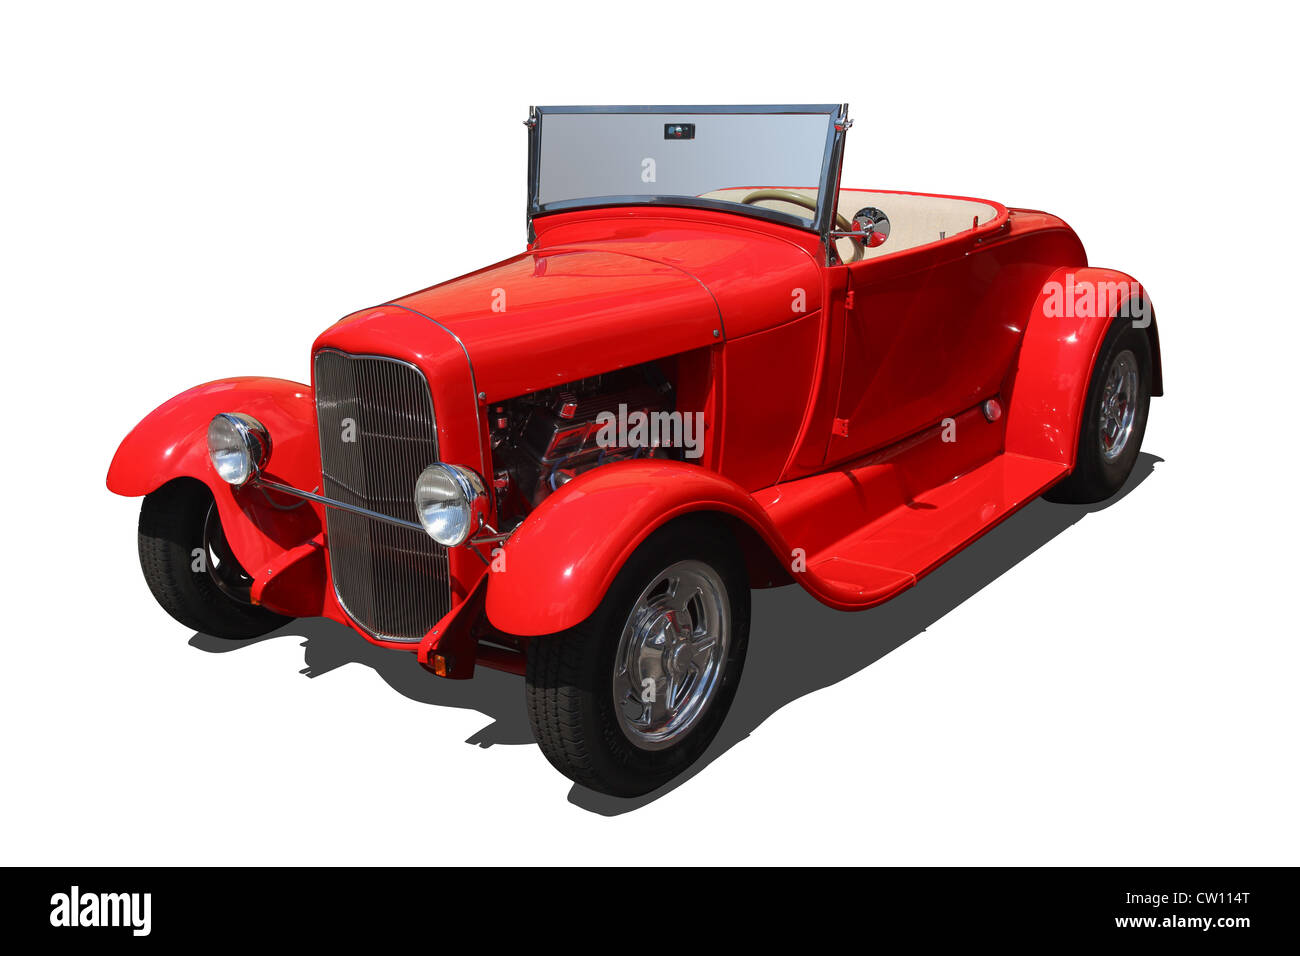 Auto- Red Roadster. - Stock Image